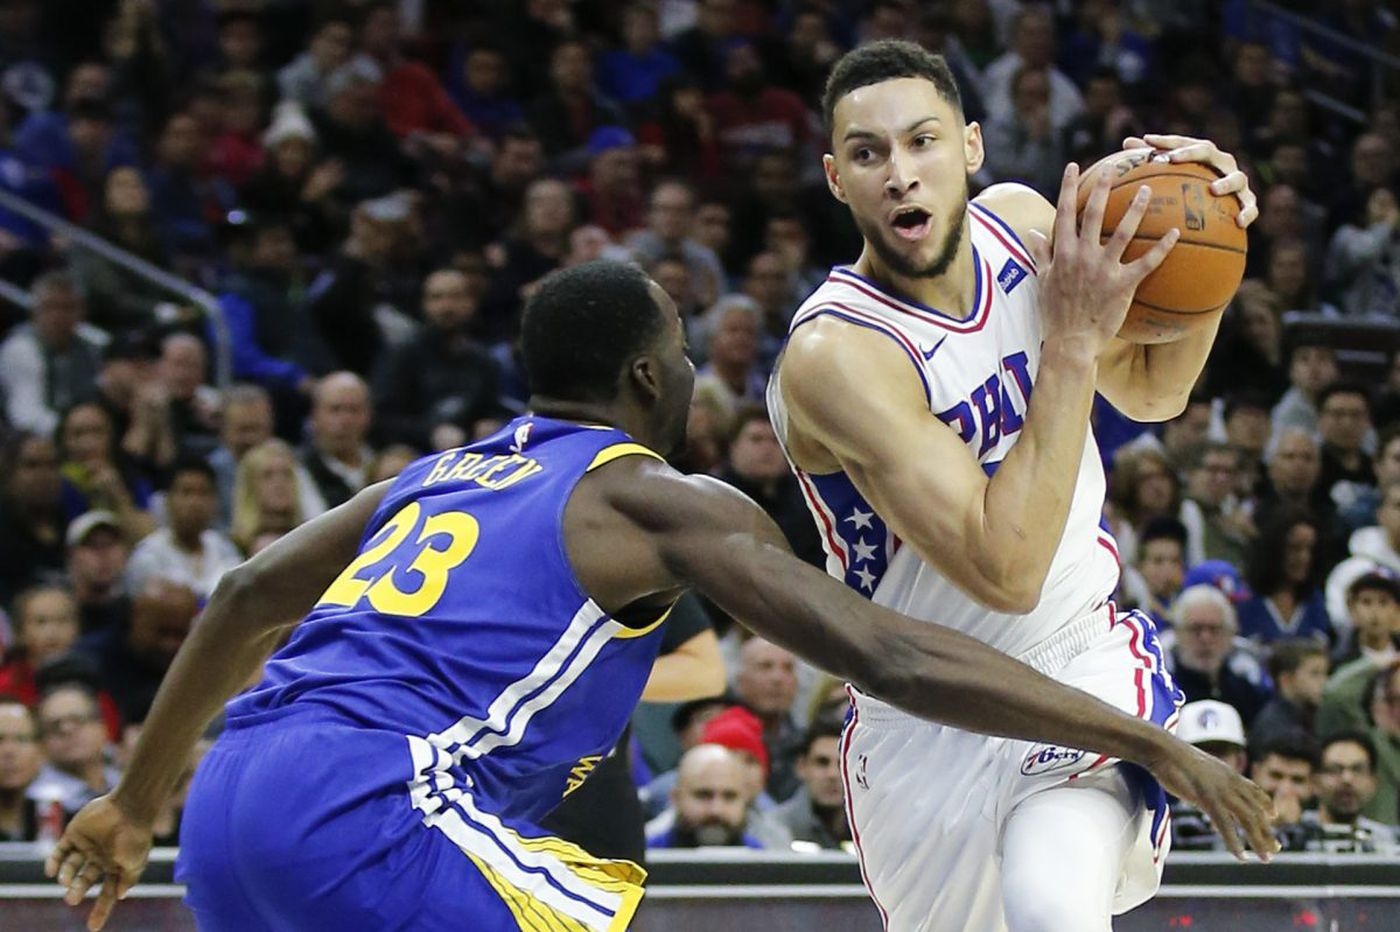 Sixers' Ben Simmons playing at an NBA All-Star level through 16 games